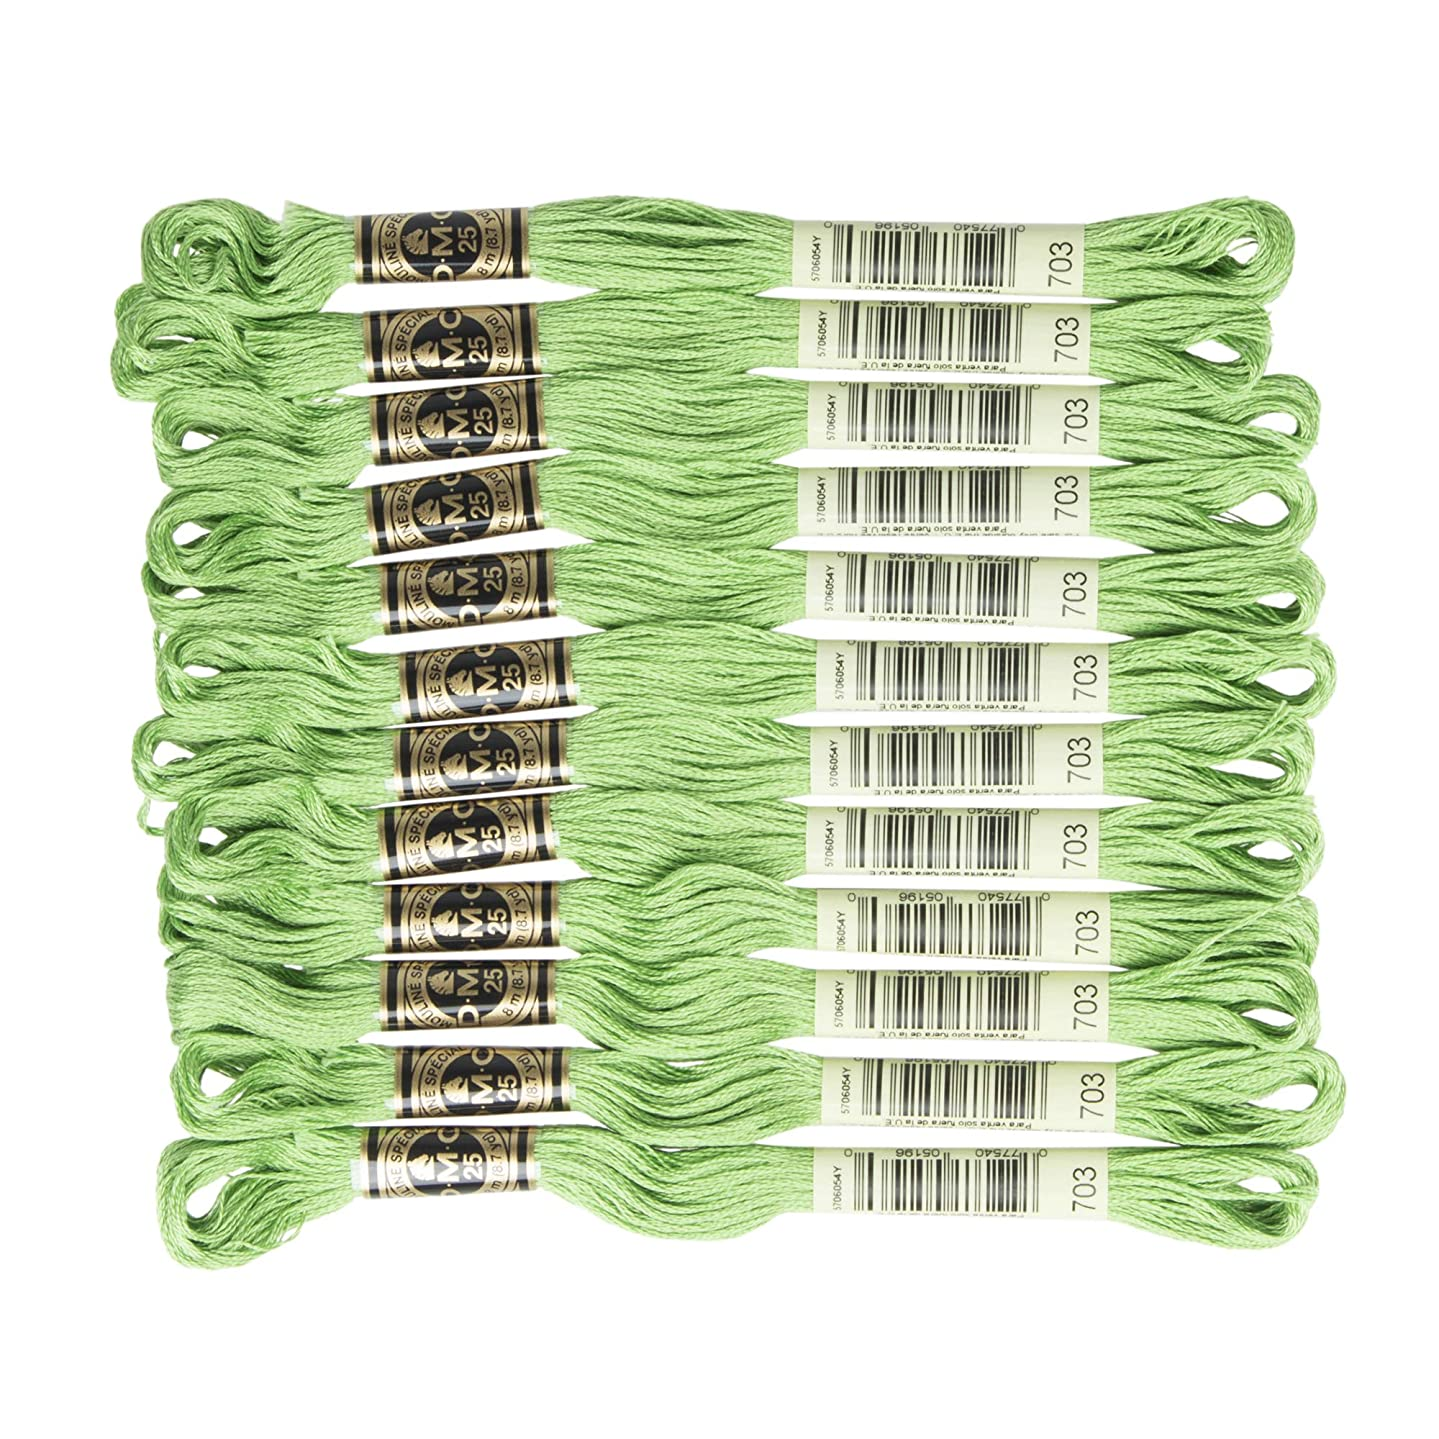 DMC 6-Strand Embroidery Cotton Floss, Chartreuse